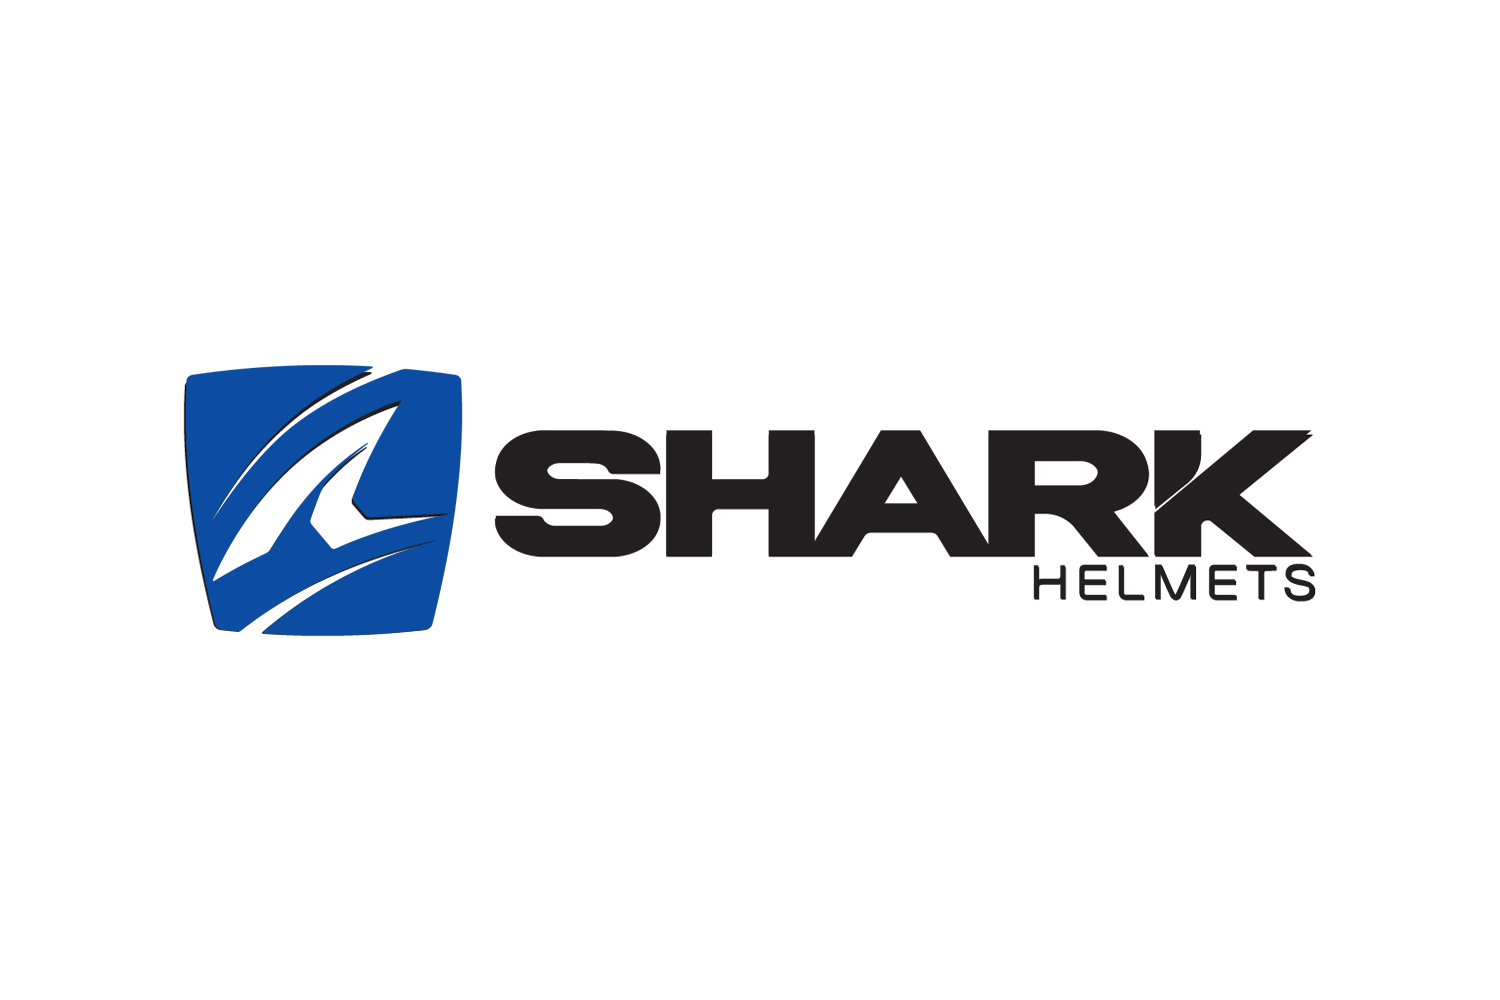 SHARK Helmets Official site